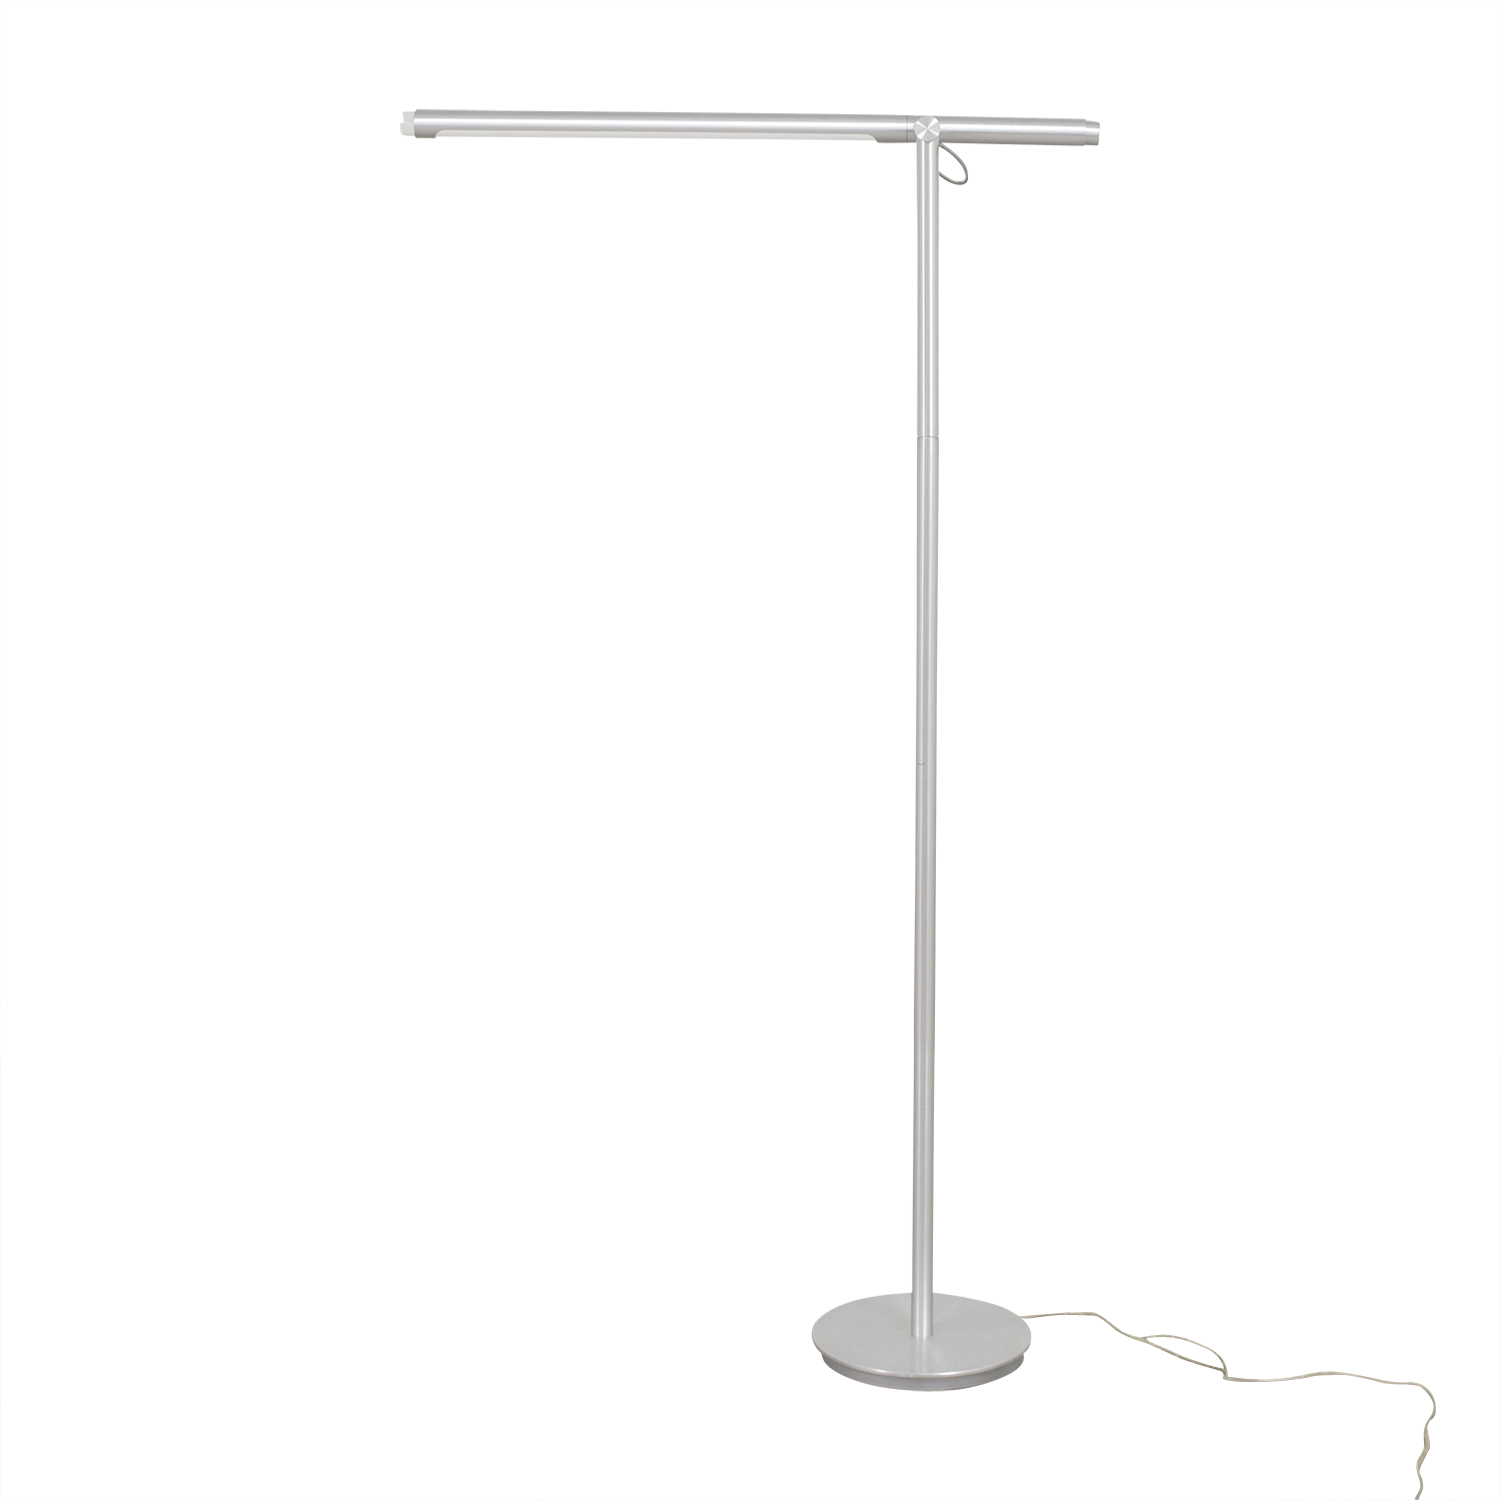 Pablo Designs Pablo Designs Brazo Floor Lamp on sale